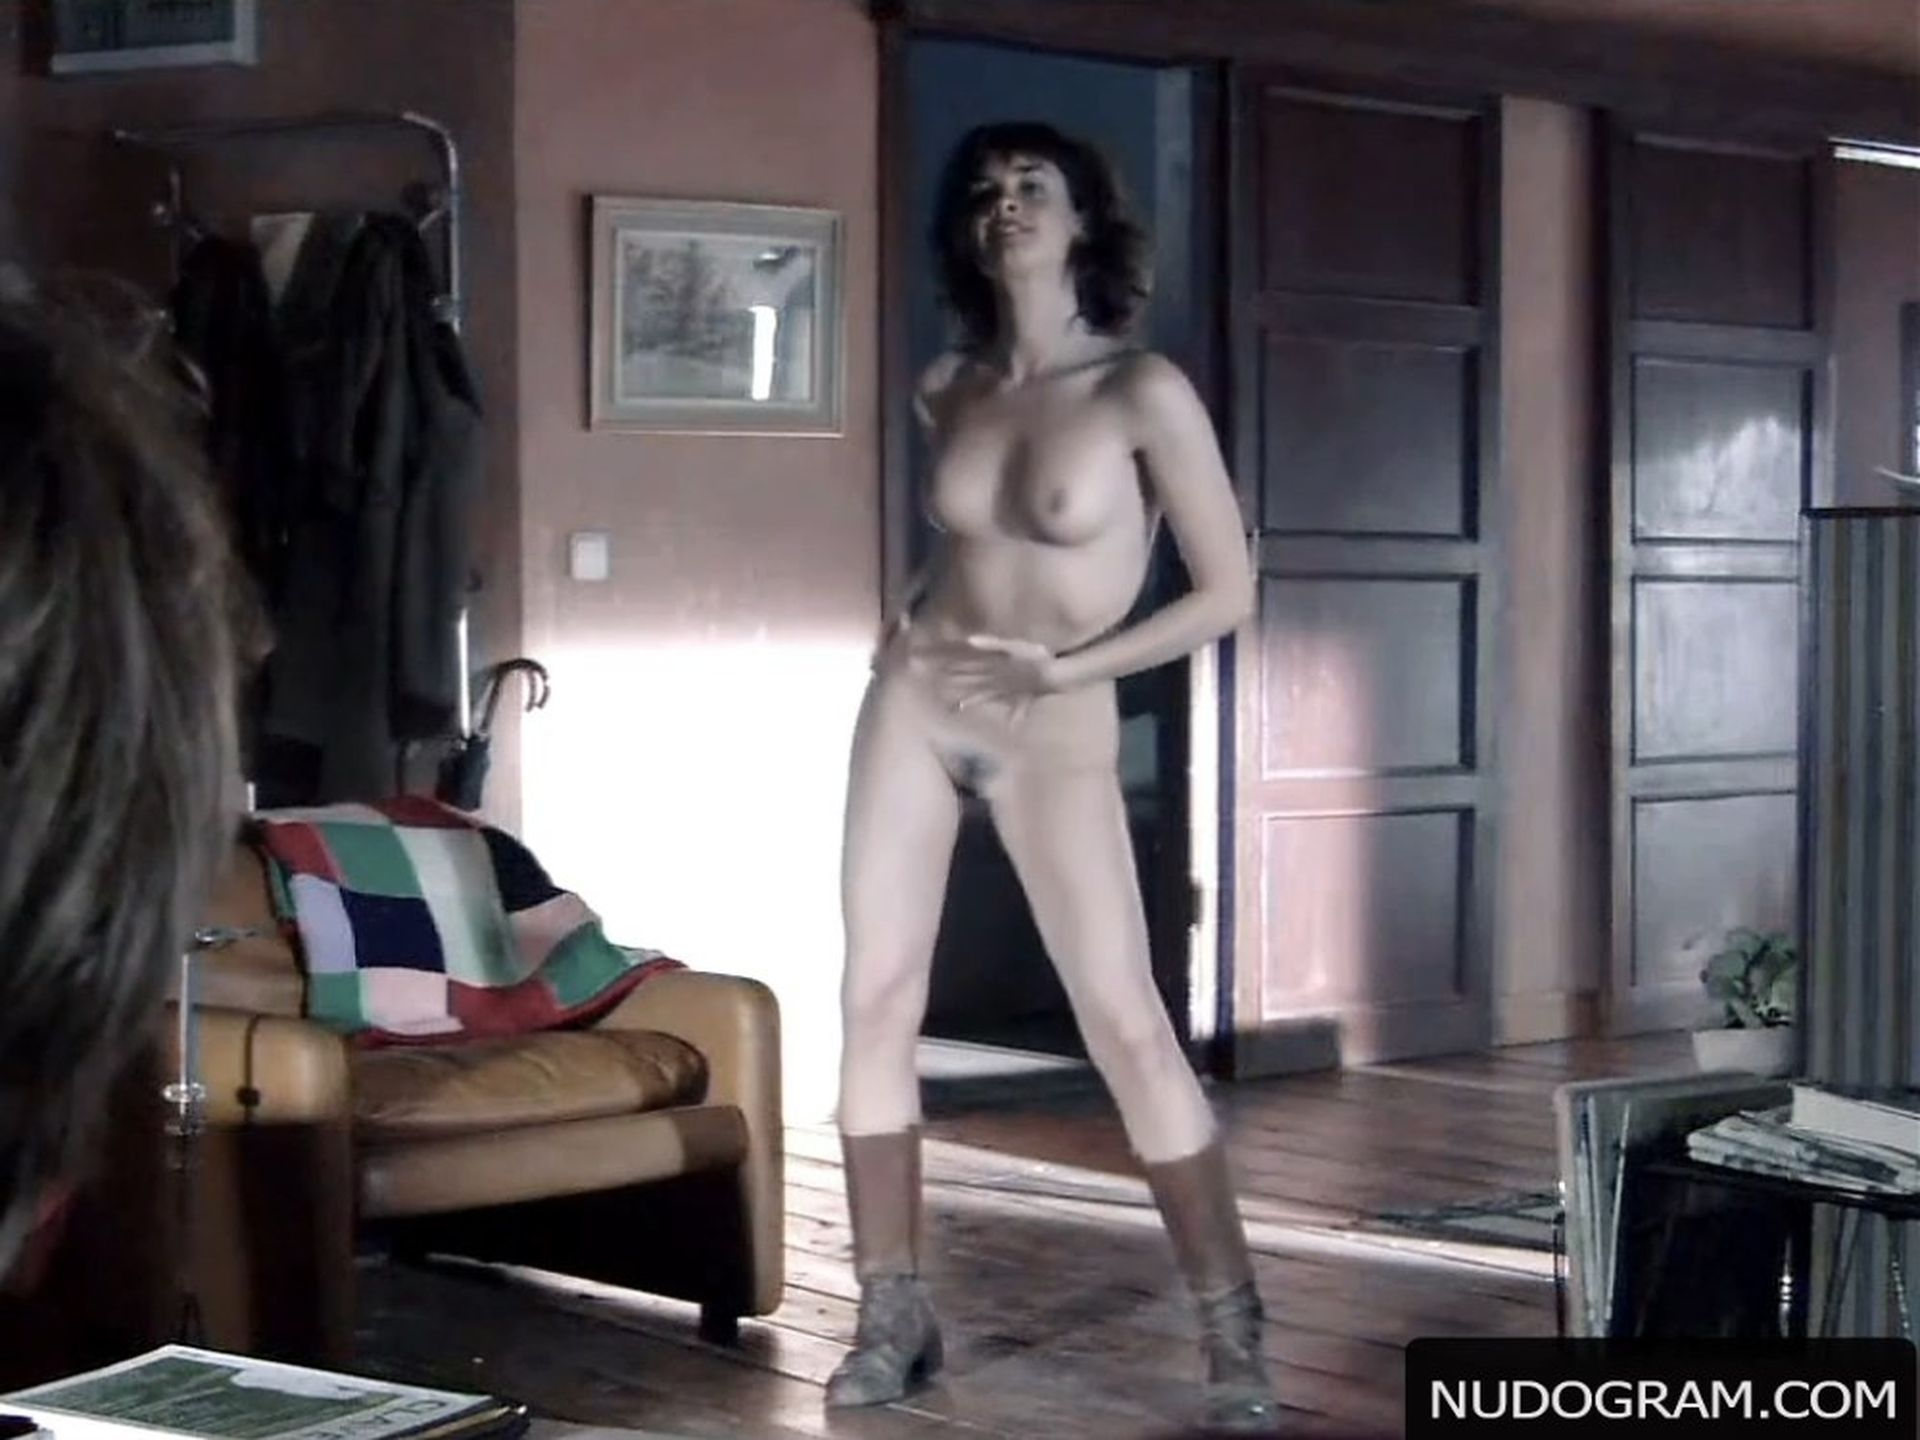 Paz vega nude boobs and sex in carmen picture